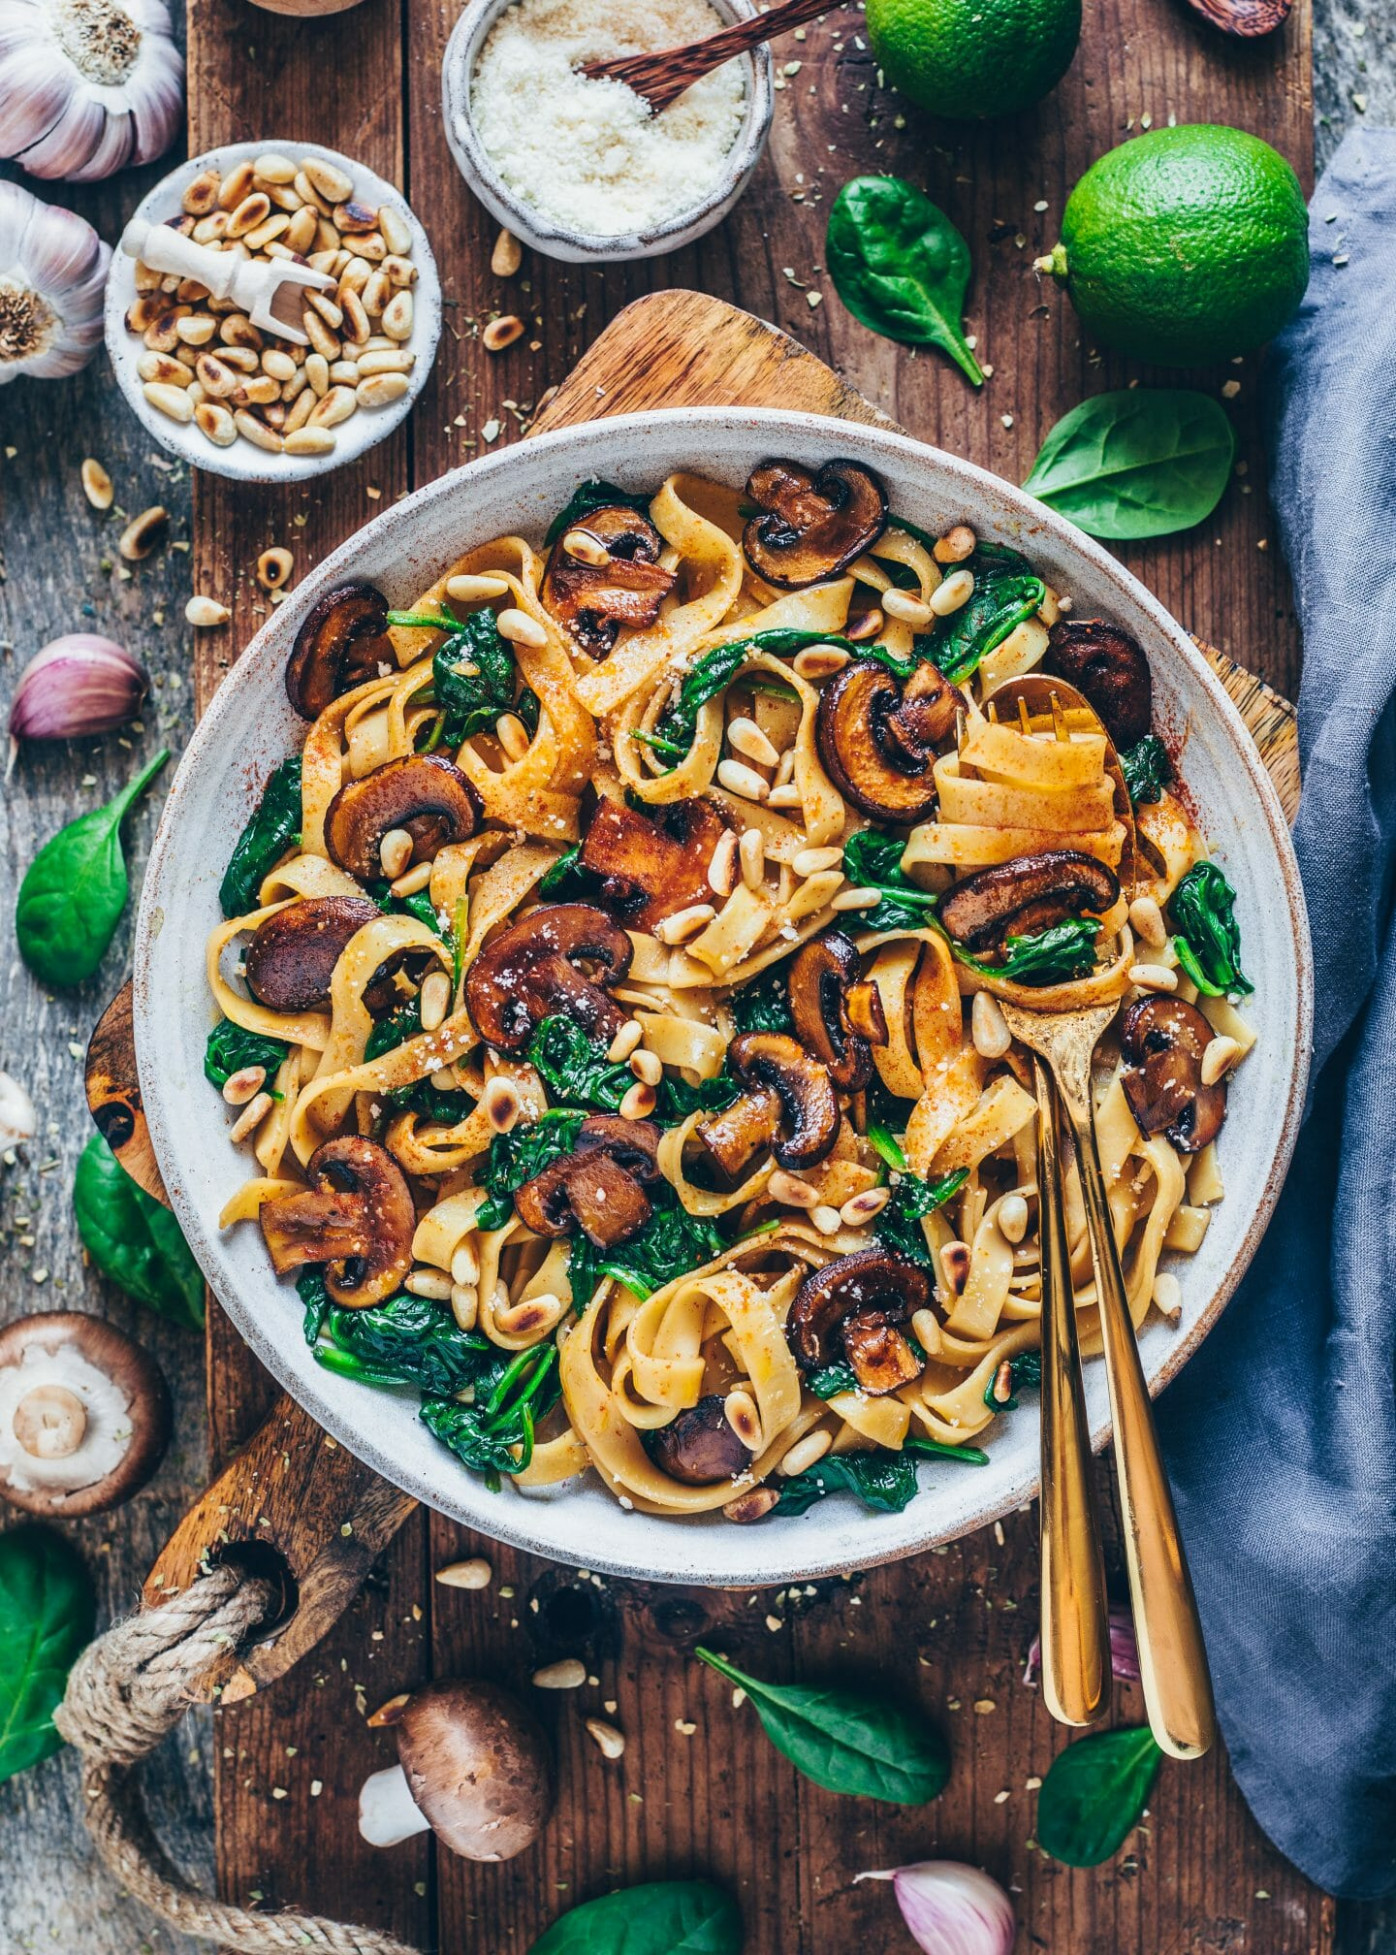 Vegan Mushroom Pasta with Spinach (easy recipe) - dinner recipes without dairy